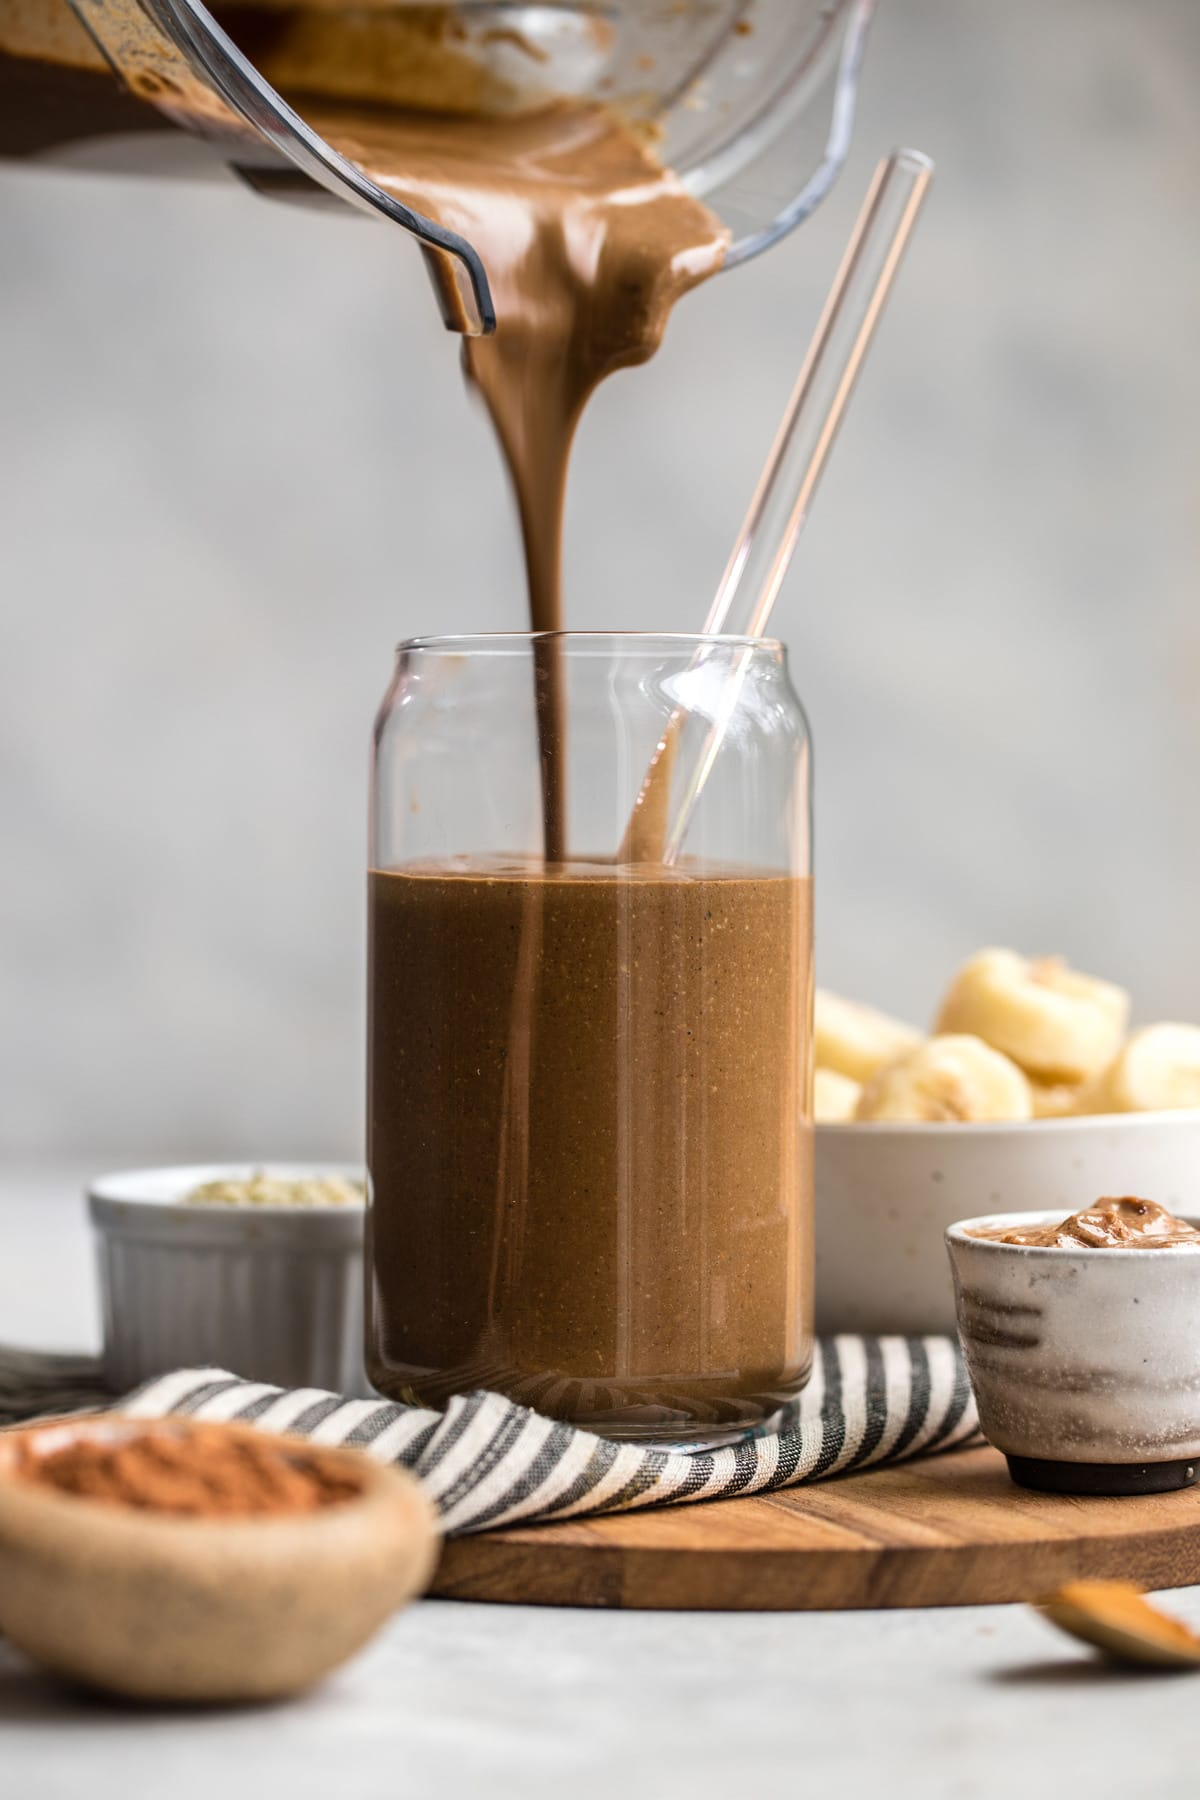 blender pouting chocolate hemp smoothie into tall glass with straw